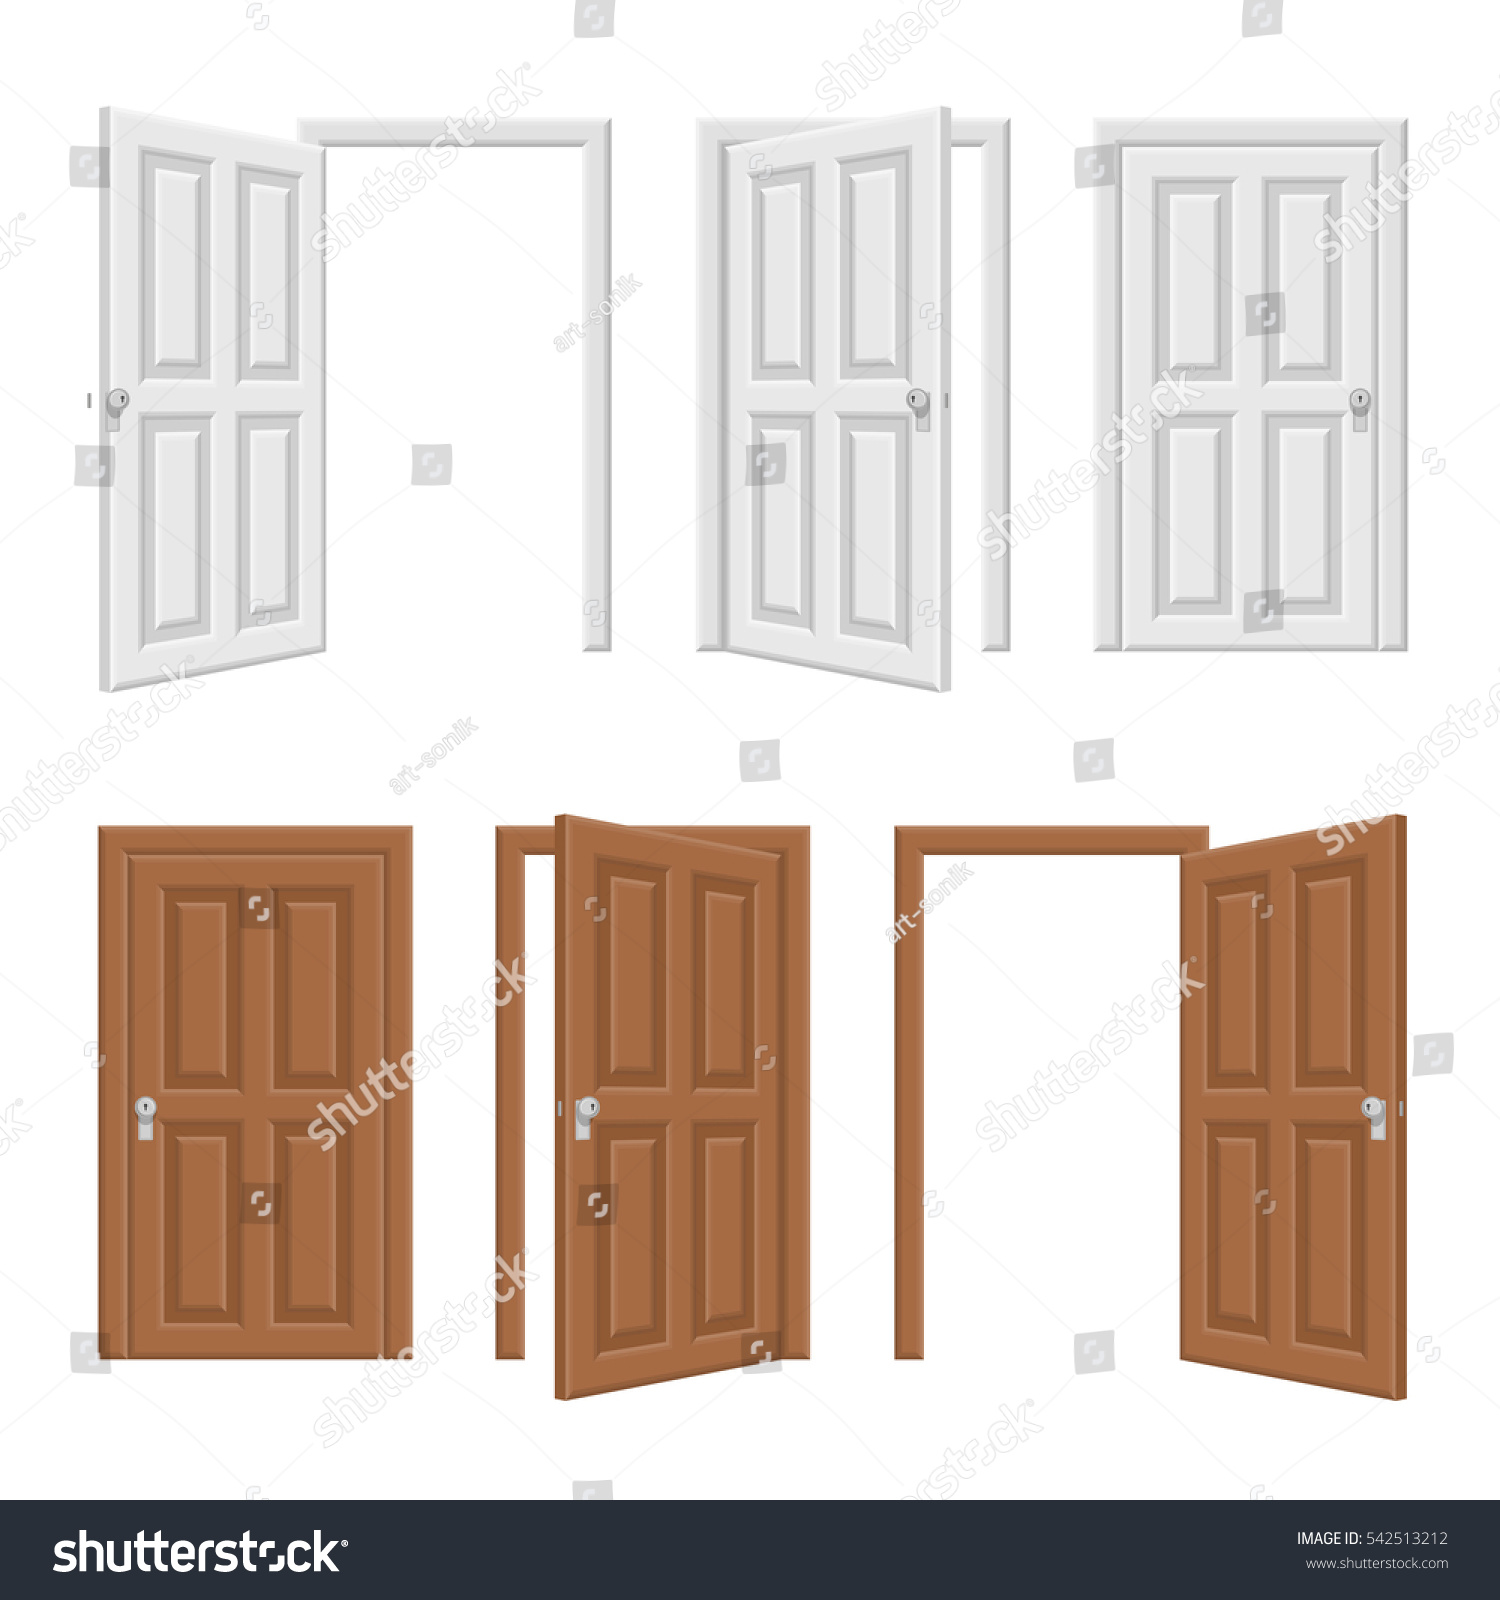 Open door closed door - Open And Closed Brown And White Wooden Door Concept Realistic Vector Illustration Of Opened And